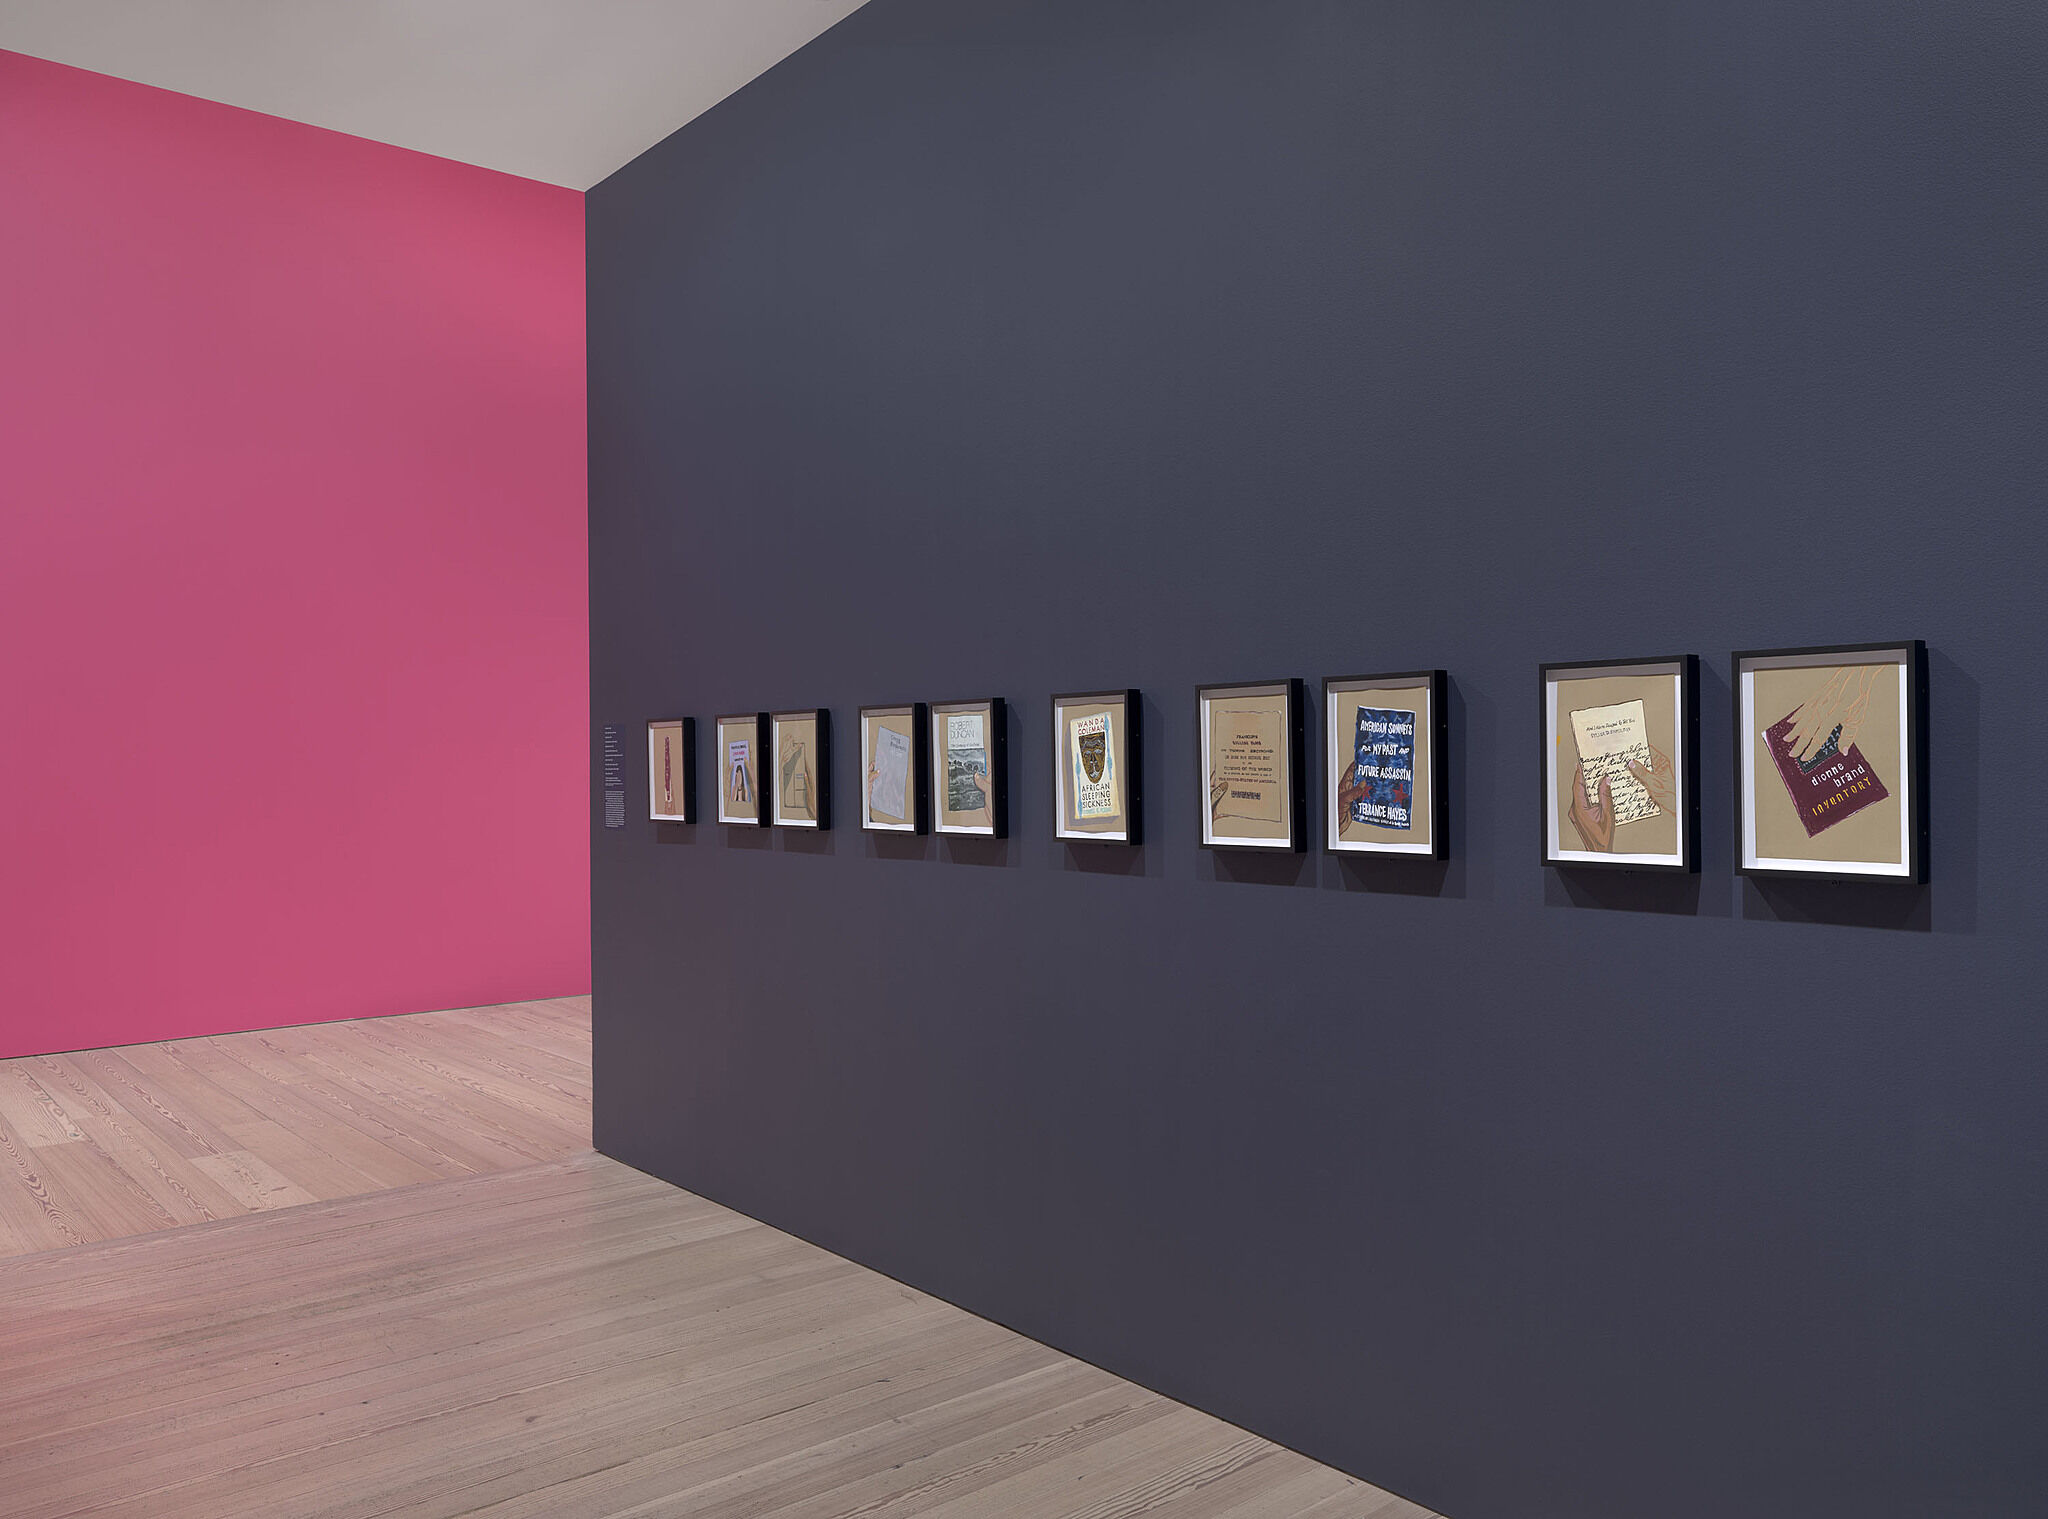 A series of small paintings on a gallery wall.